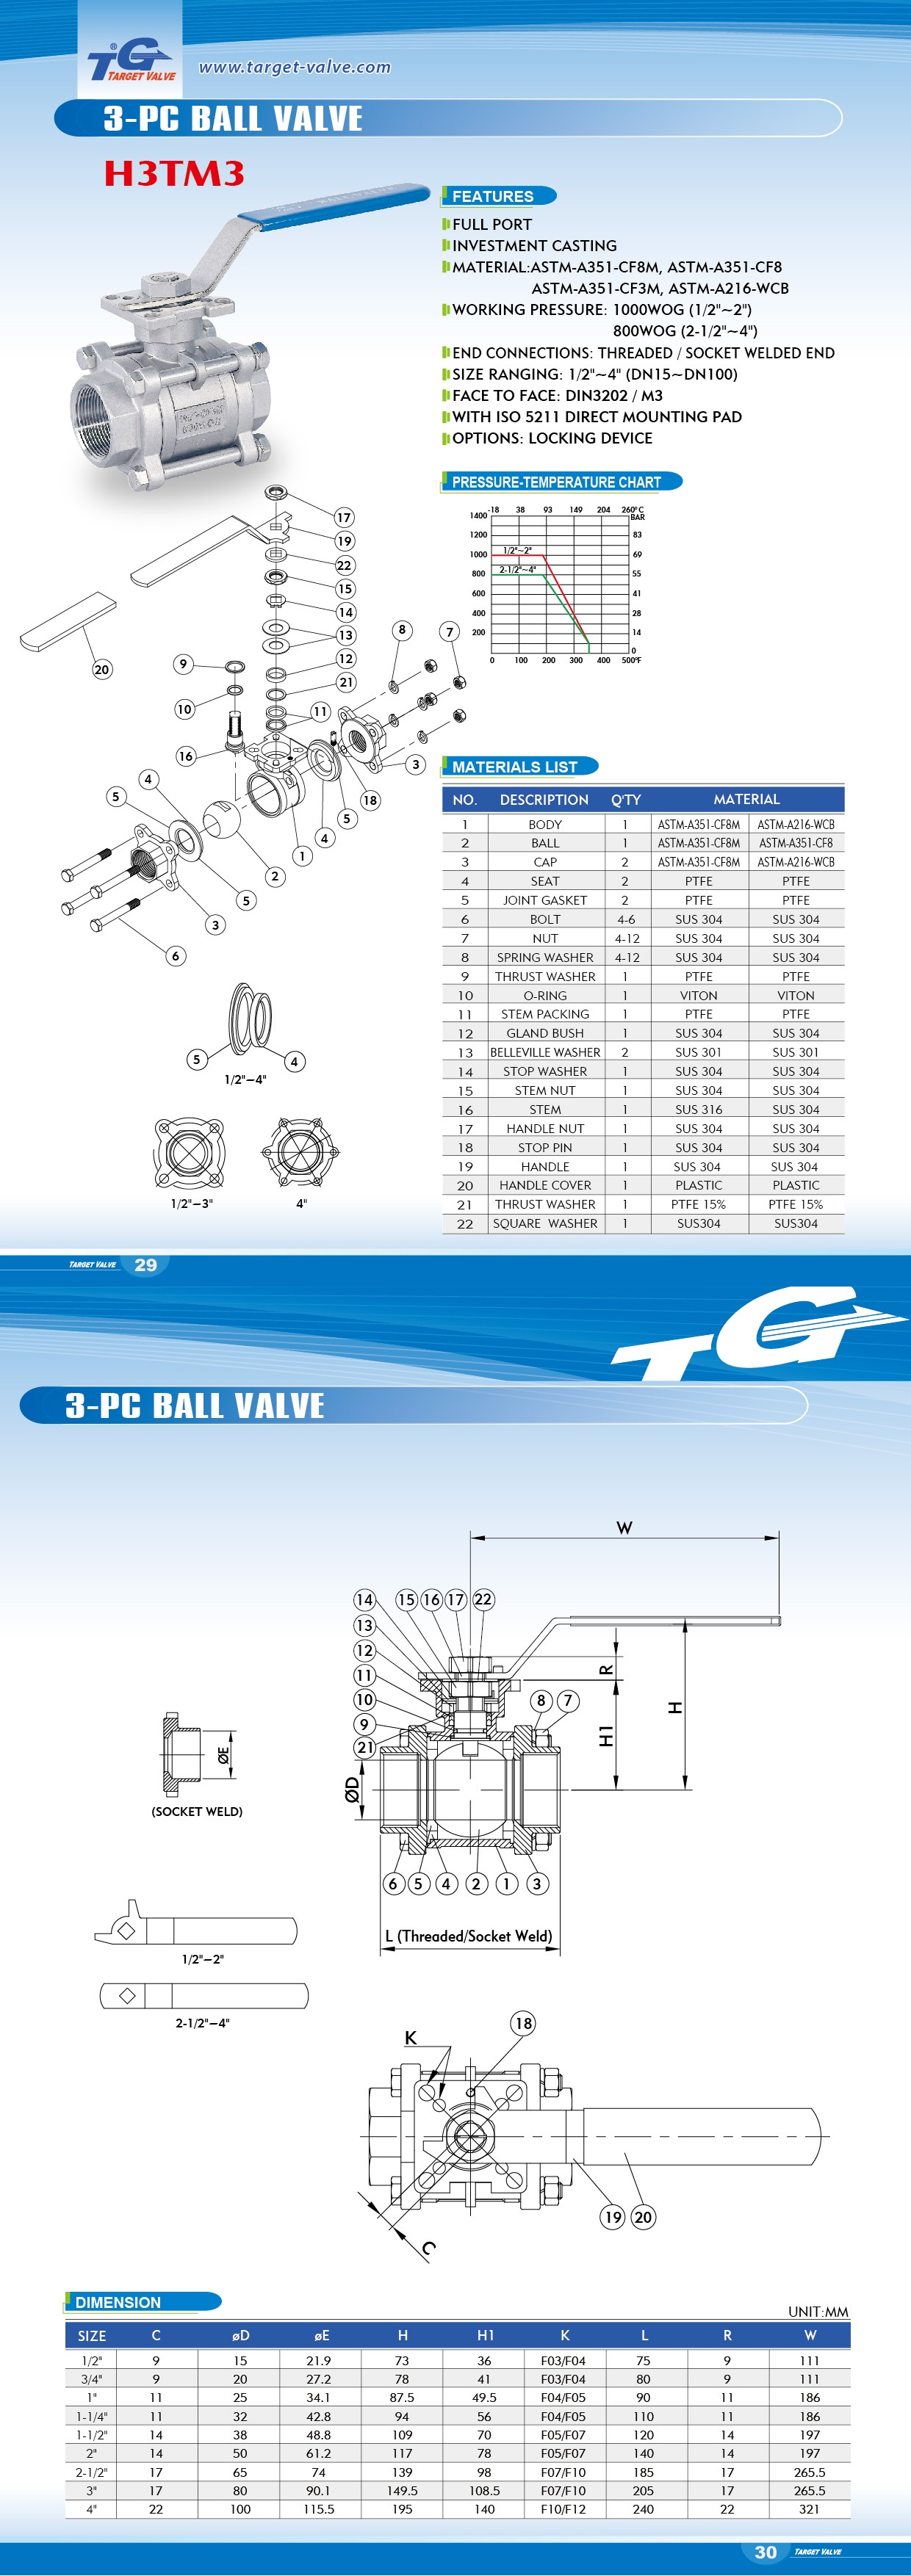 3 PC BALL VALVE M3 TYPE - H3TM3